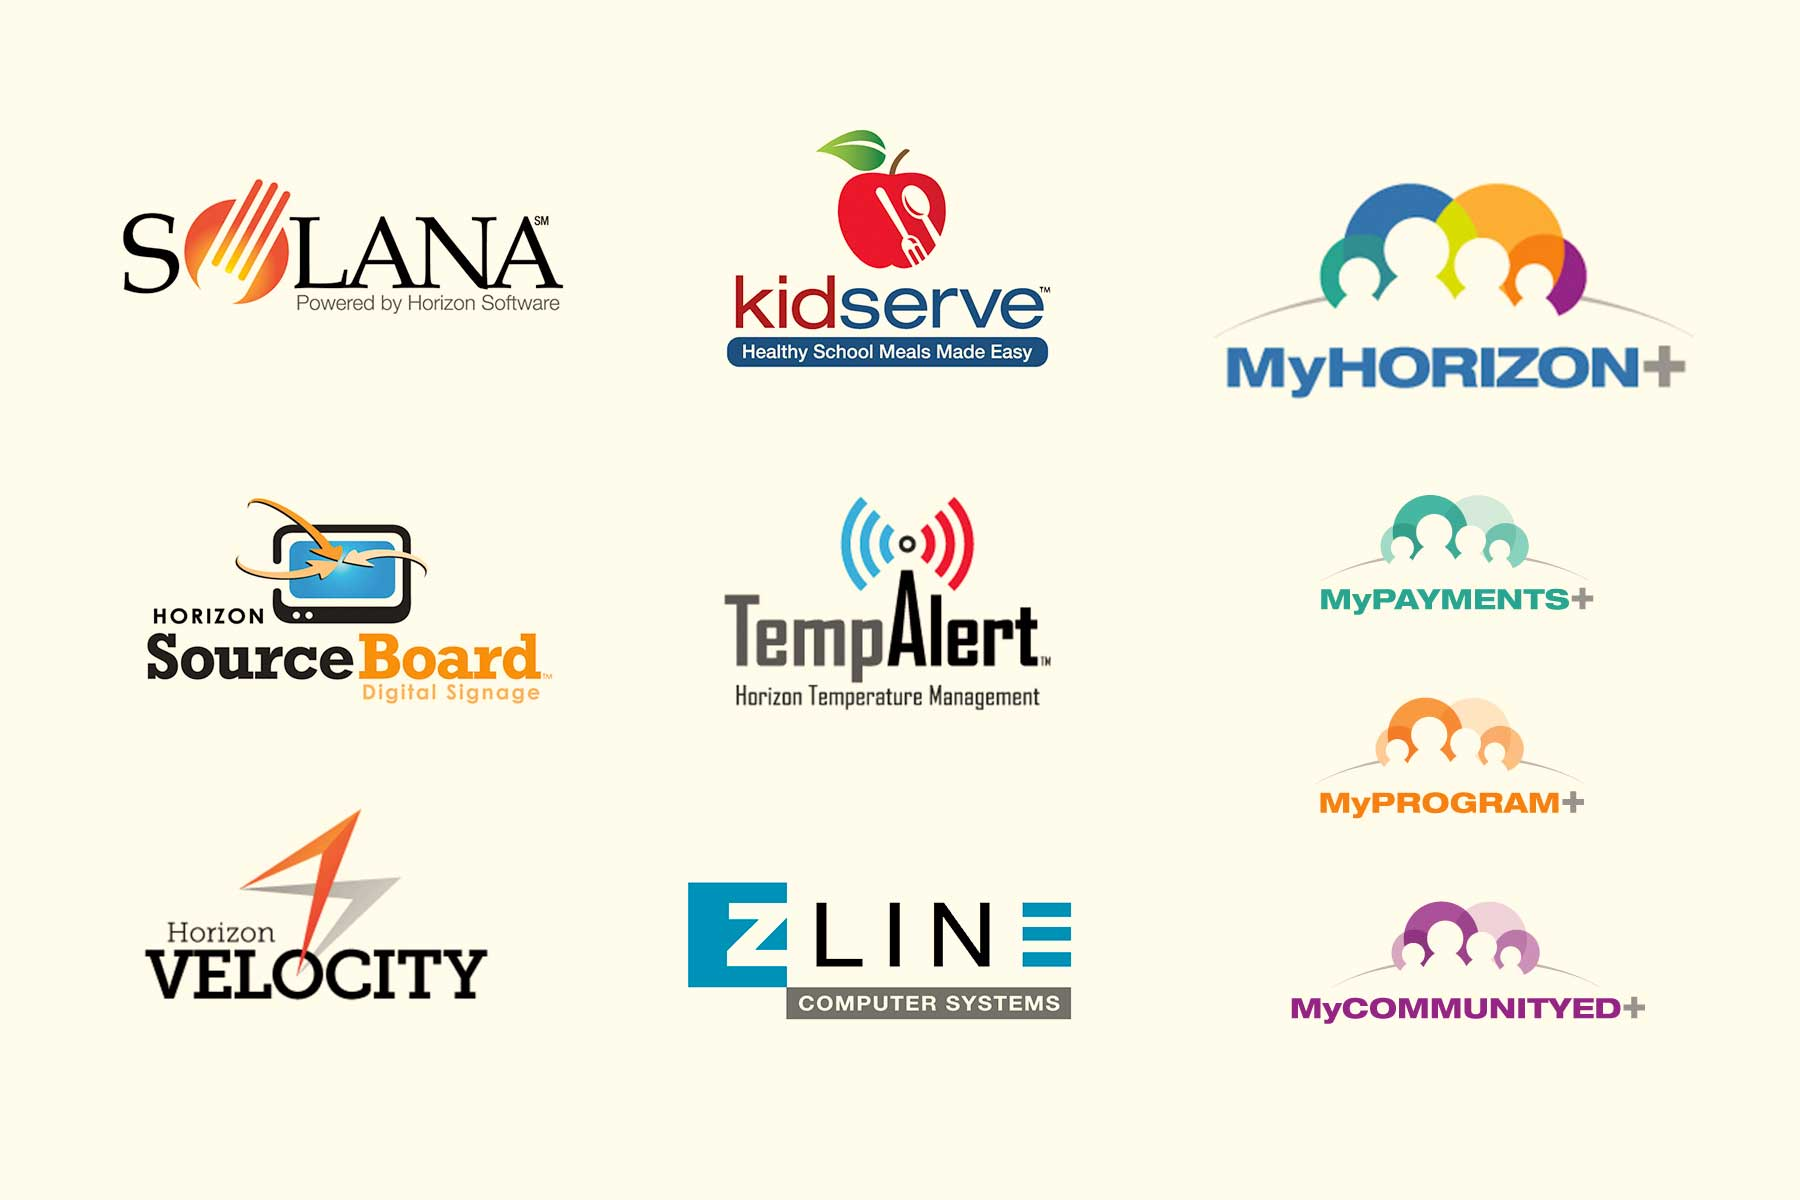 montage of corporate logos